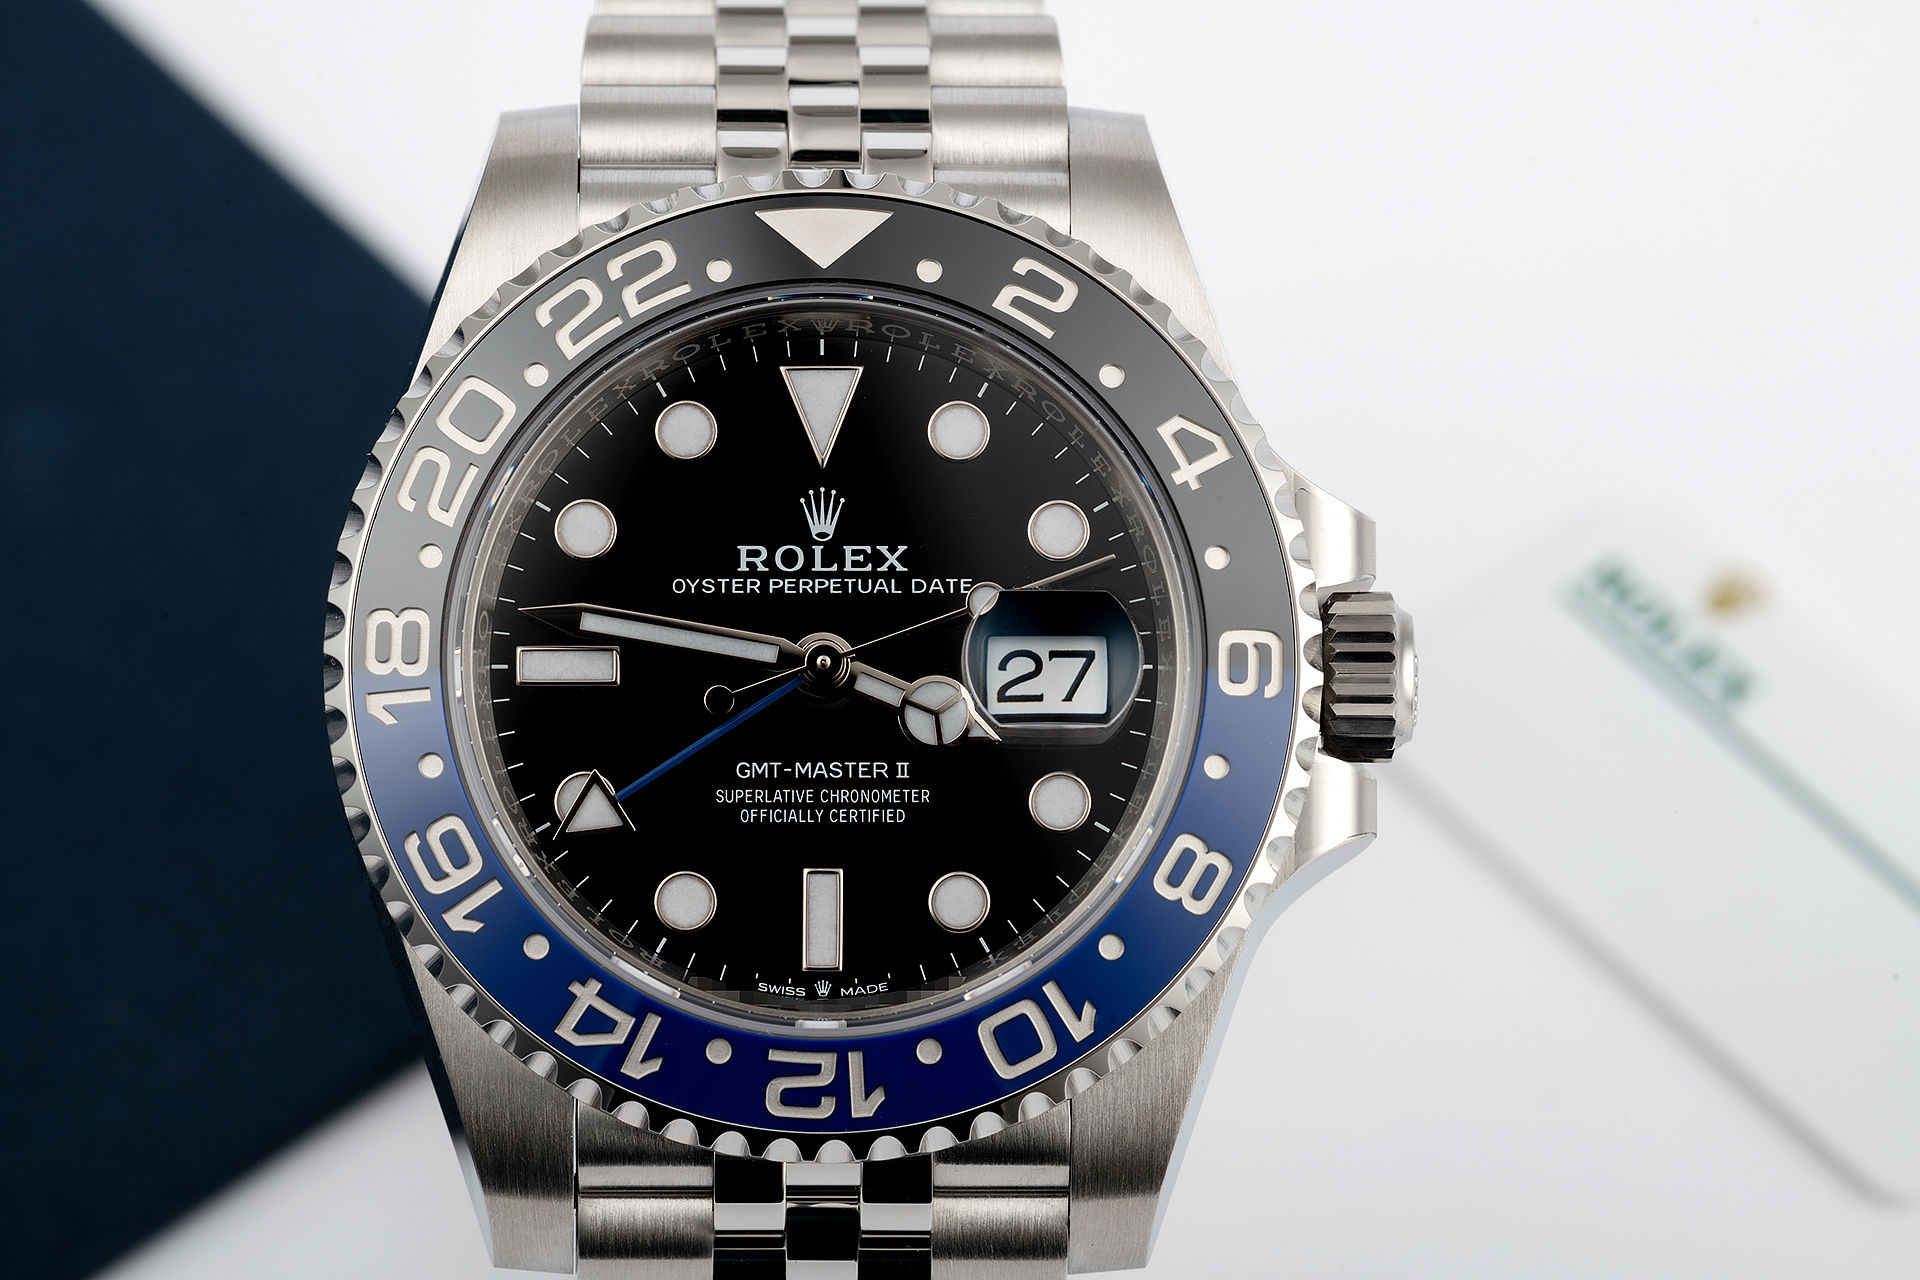 ref 126710BLNR | 'Brand New' 5 Year Warranty | Rolex GMT-Master II